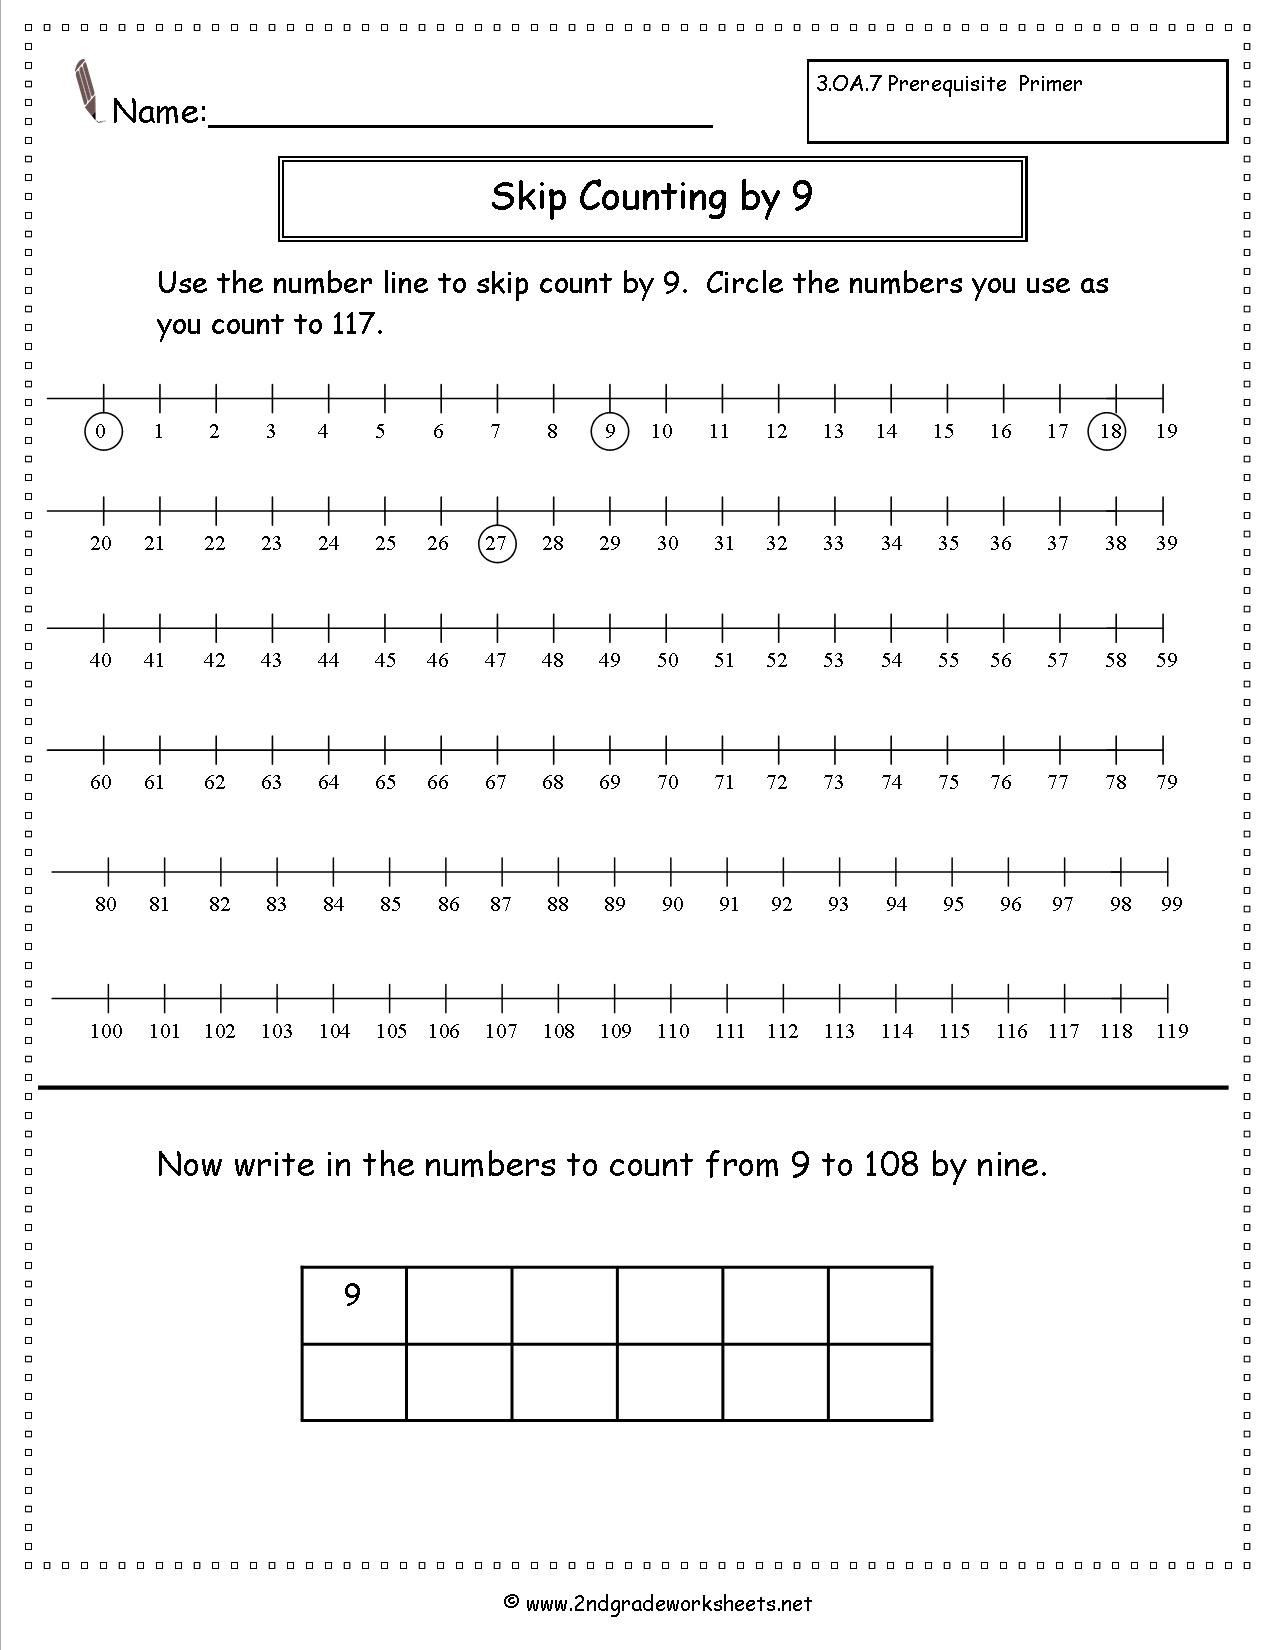 Skip Counting Worksheets 3rd Grade Free Skip Counting Worksheets Multiple Styles All Single